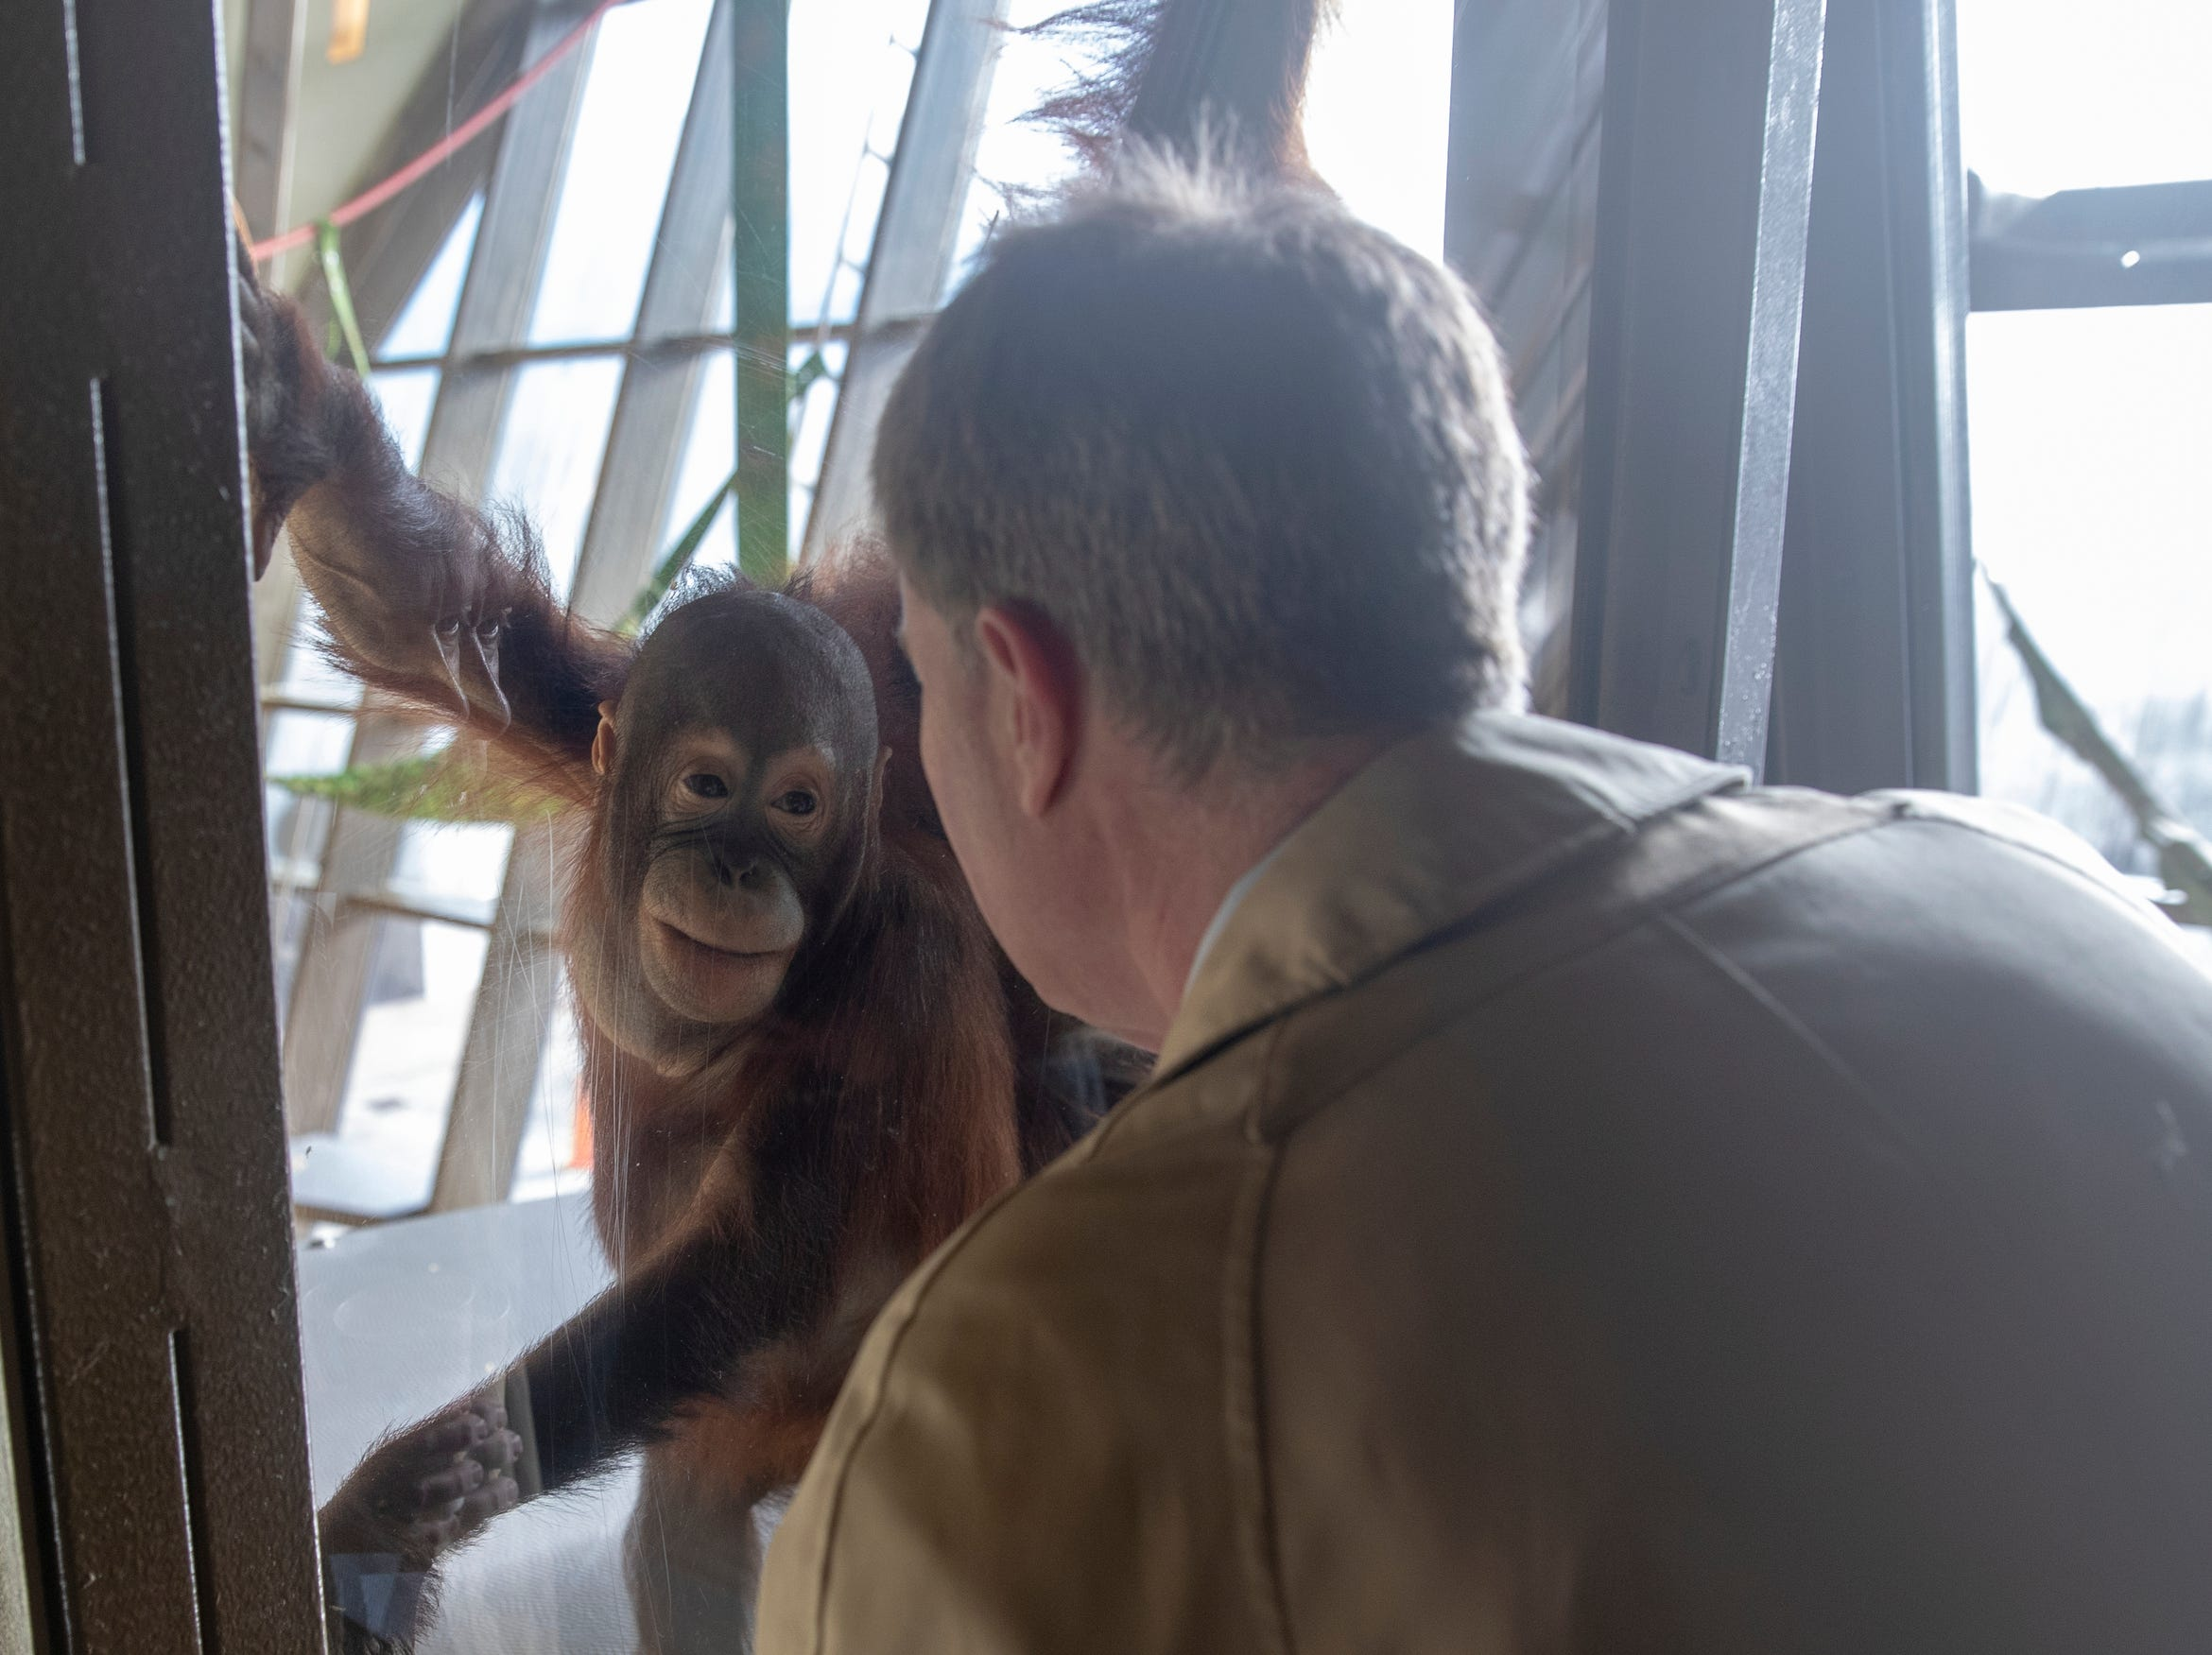 Mayor Joe Hogsett looks at orangutans, before an announcement about Hogsett's EmployIndy program, at the Indianapolis Zoo, Wednesday, Jan. 30, 2019. The program, in its fourth year, has employed about 6,000 young adults, and is seeking employer partnerships for this coming Summer.